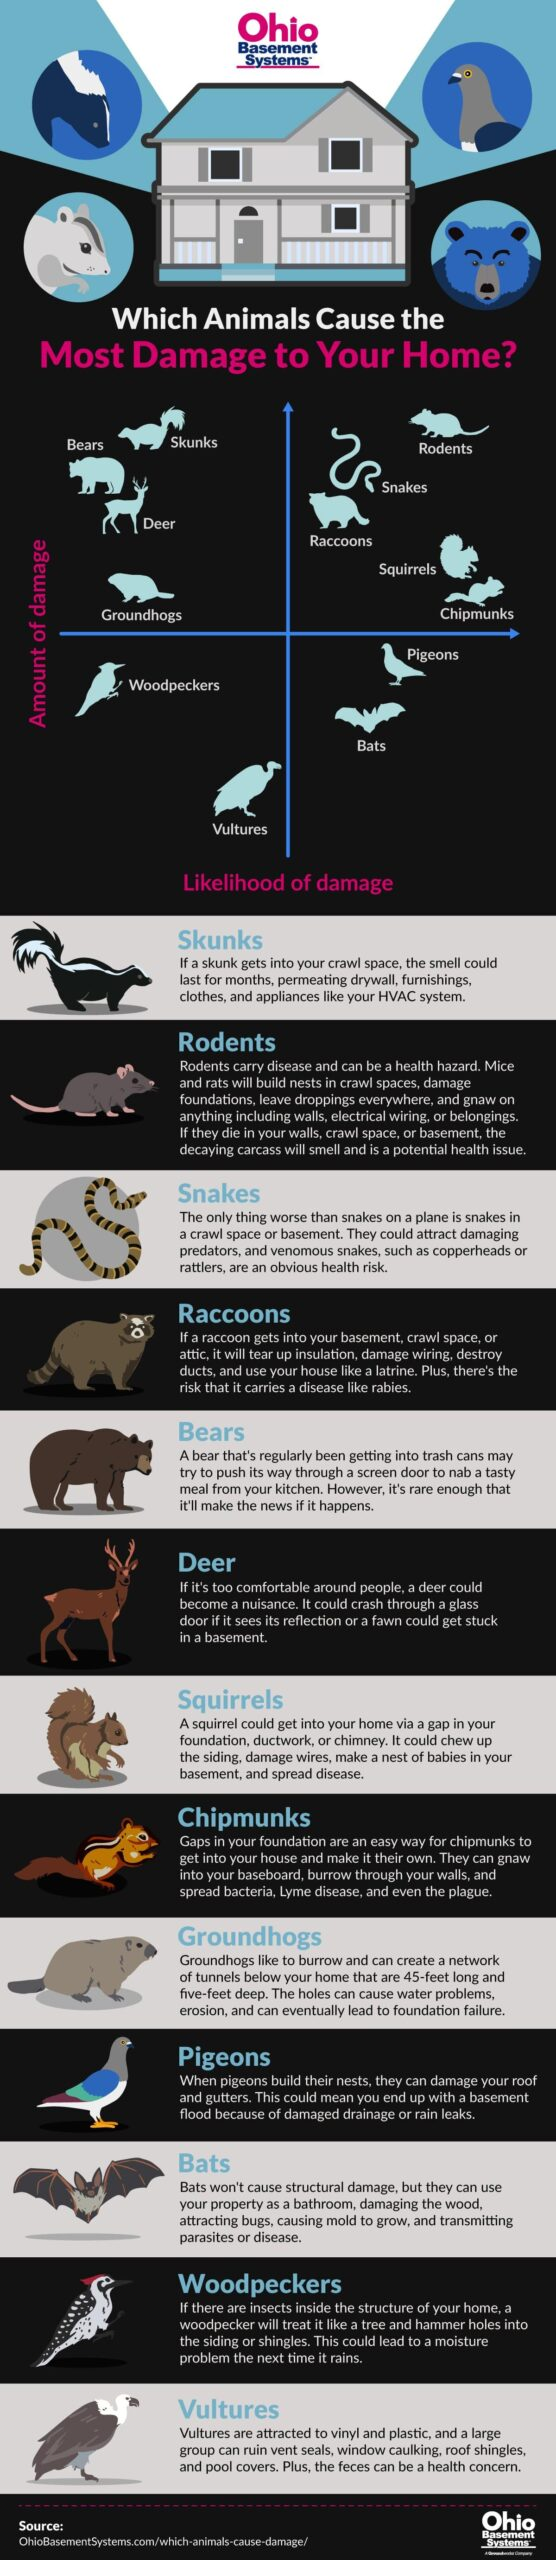 which-animals-cause-damage-infographic-ohio-basement-systems